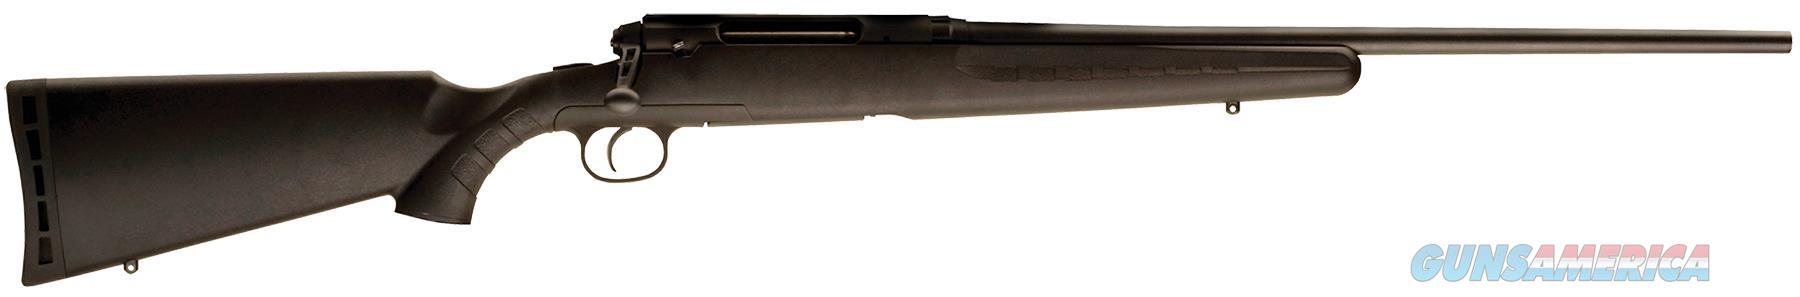 "SAVAGE ARMS AXIS 243 22"" BLK 19222  Guns > Rifles > Savage Rifles > Standard Bolt Action > Sporting"